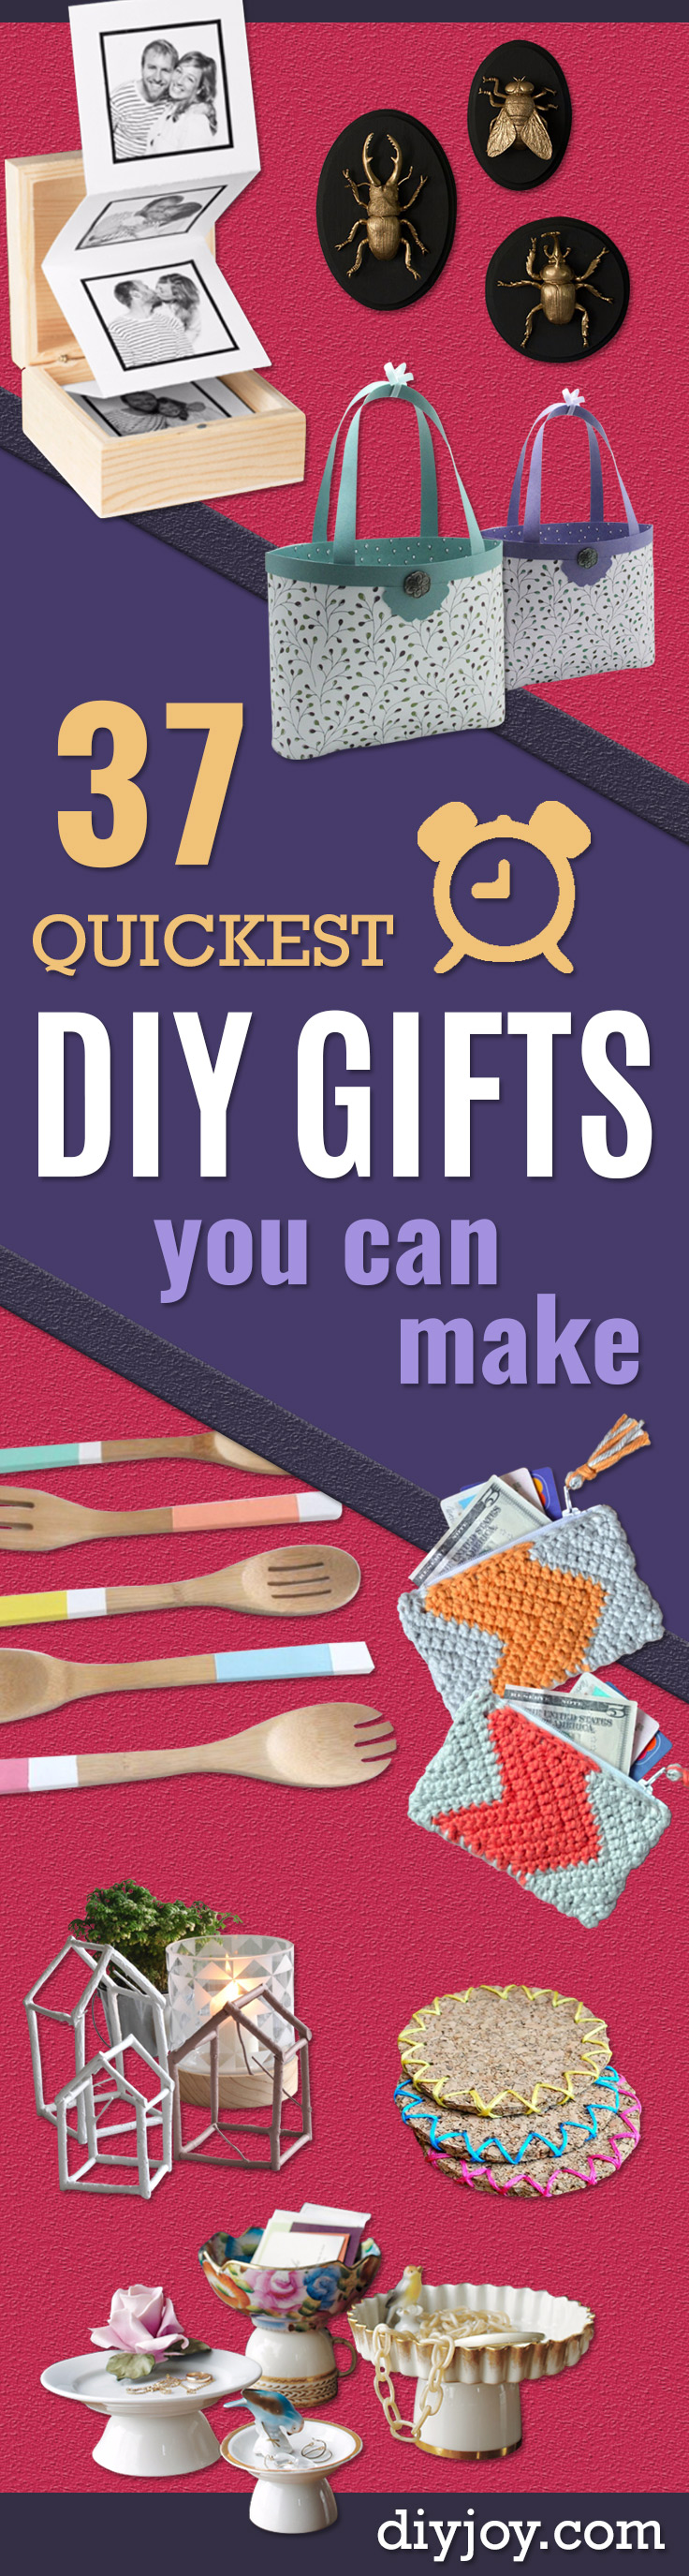 37 Quickest DIY Gifts You Can Make - Easy and Quick Last Minute DIY Gift Ideas for Mom, Dad, Him or Her, Freinds, Teens, Kids, Girls and Boys. Fast Crafts and Fun Ideas in A Jar, Birthday Presents - Step by Step Tutorials http://diyjoy.com/quick-diy-gifts